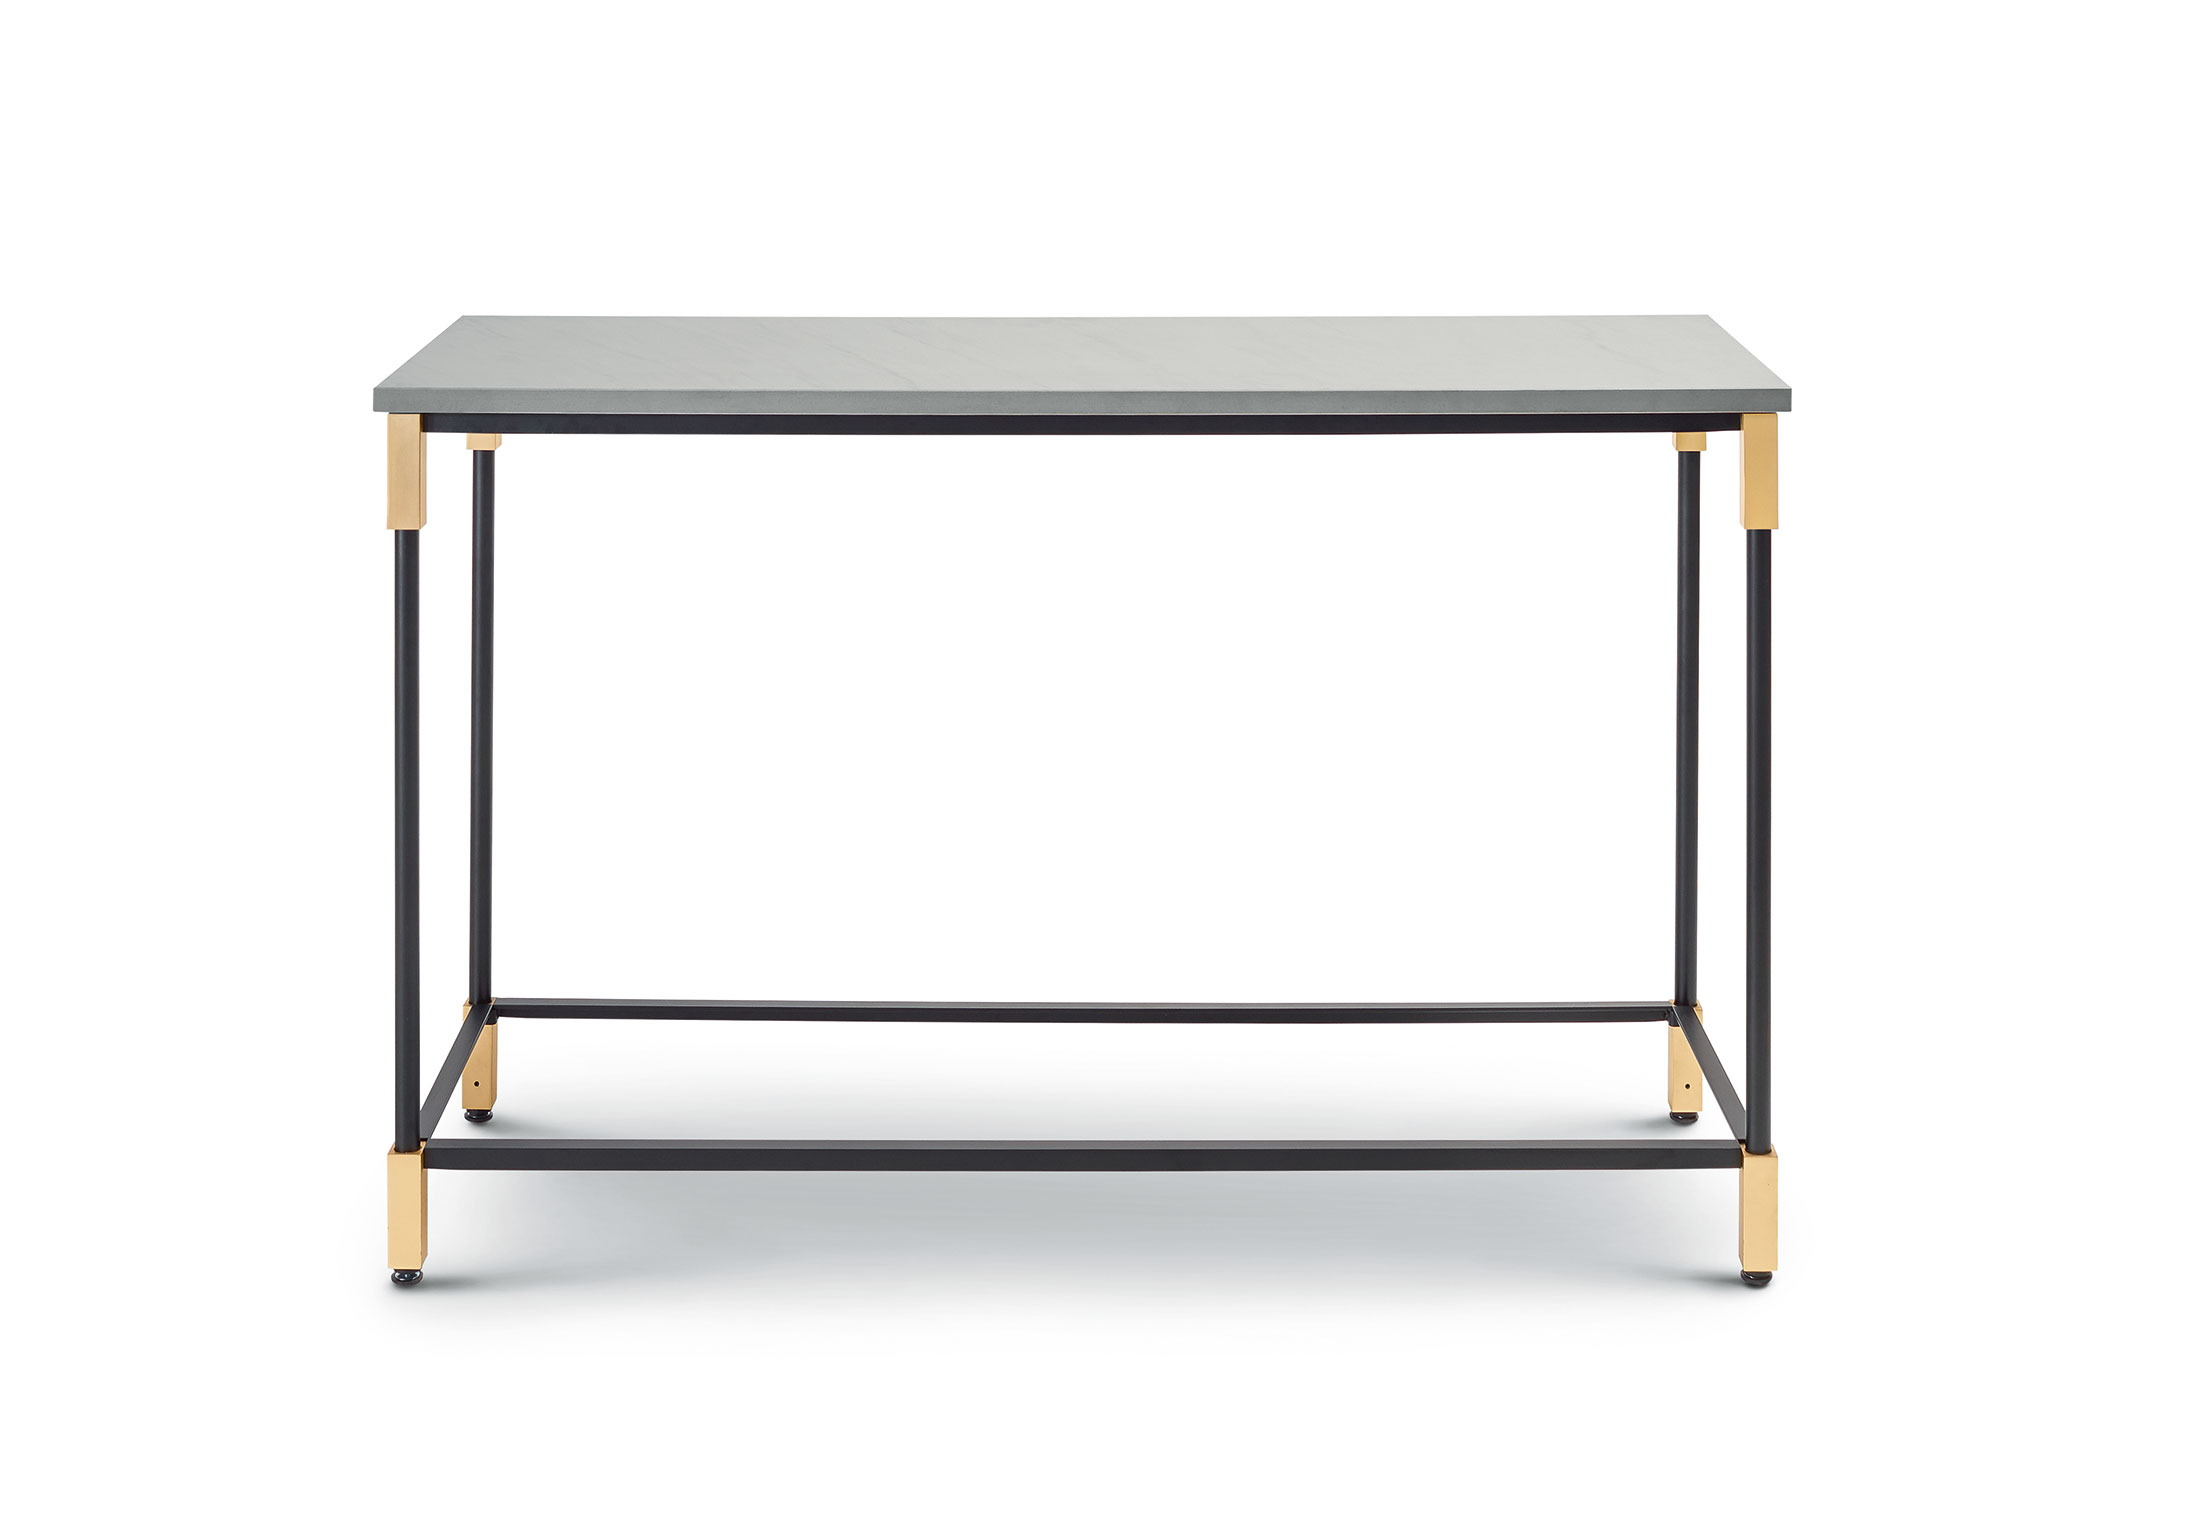 Match Console Tablearflex | Stylepark For Natural 2 Door Plasma Console Tables (Gallery 3 of 20)